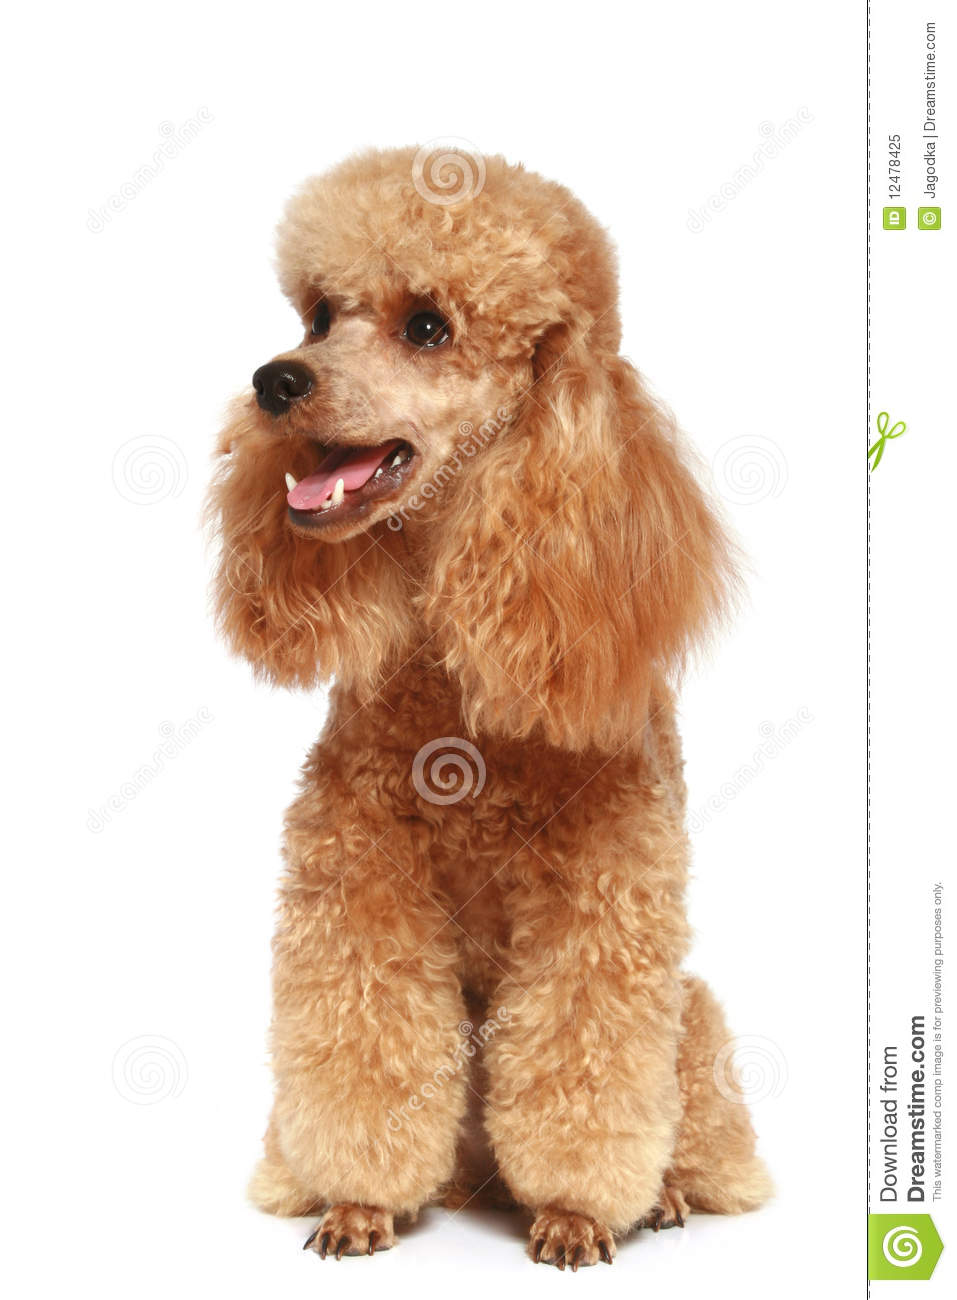 Apricot poodle puppy (1year)